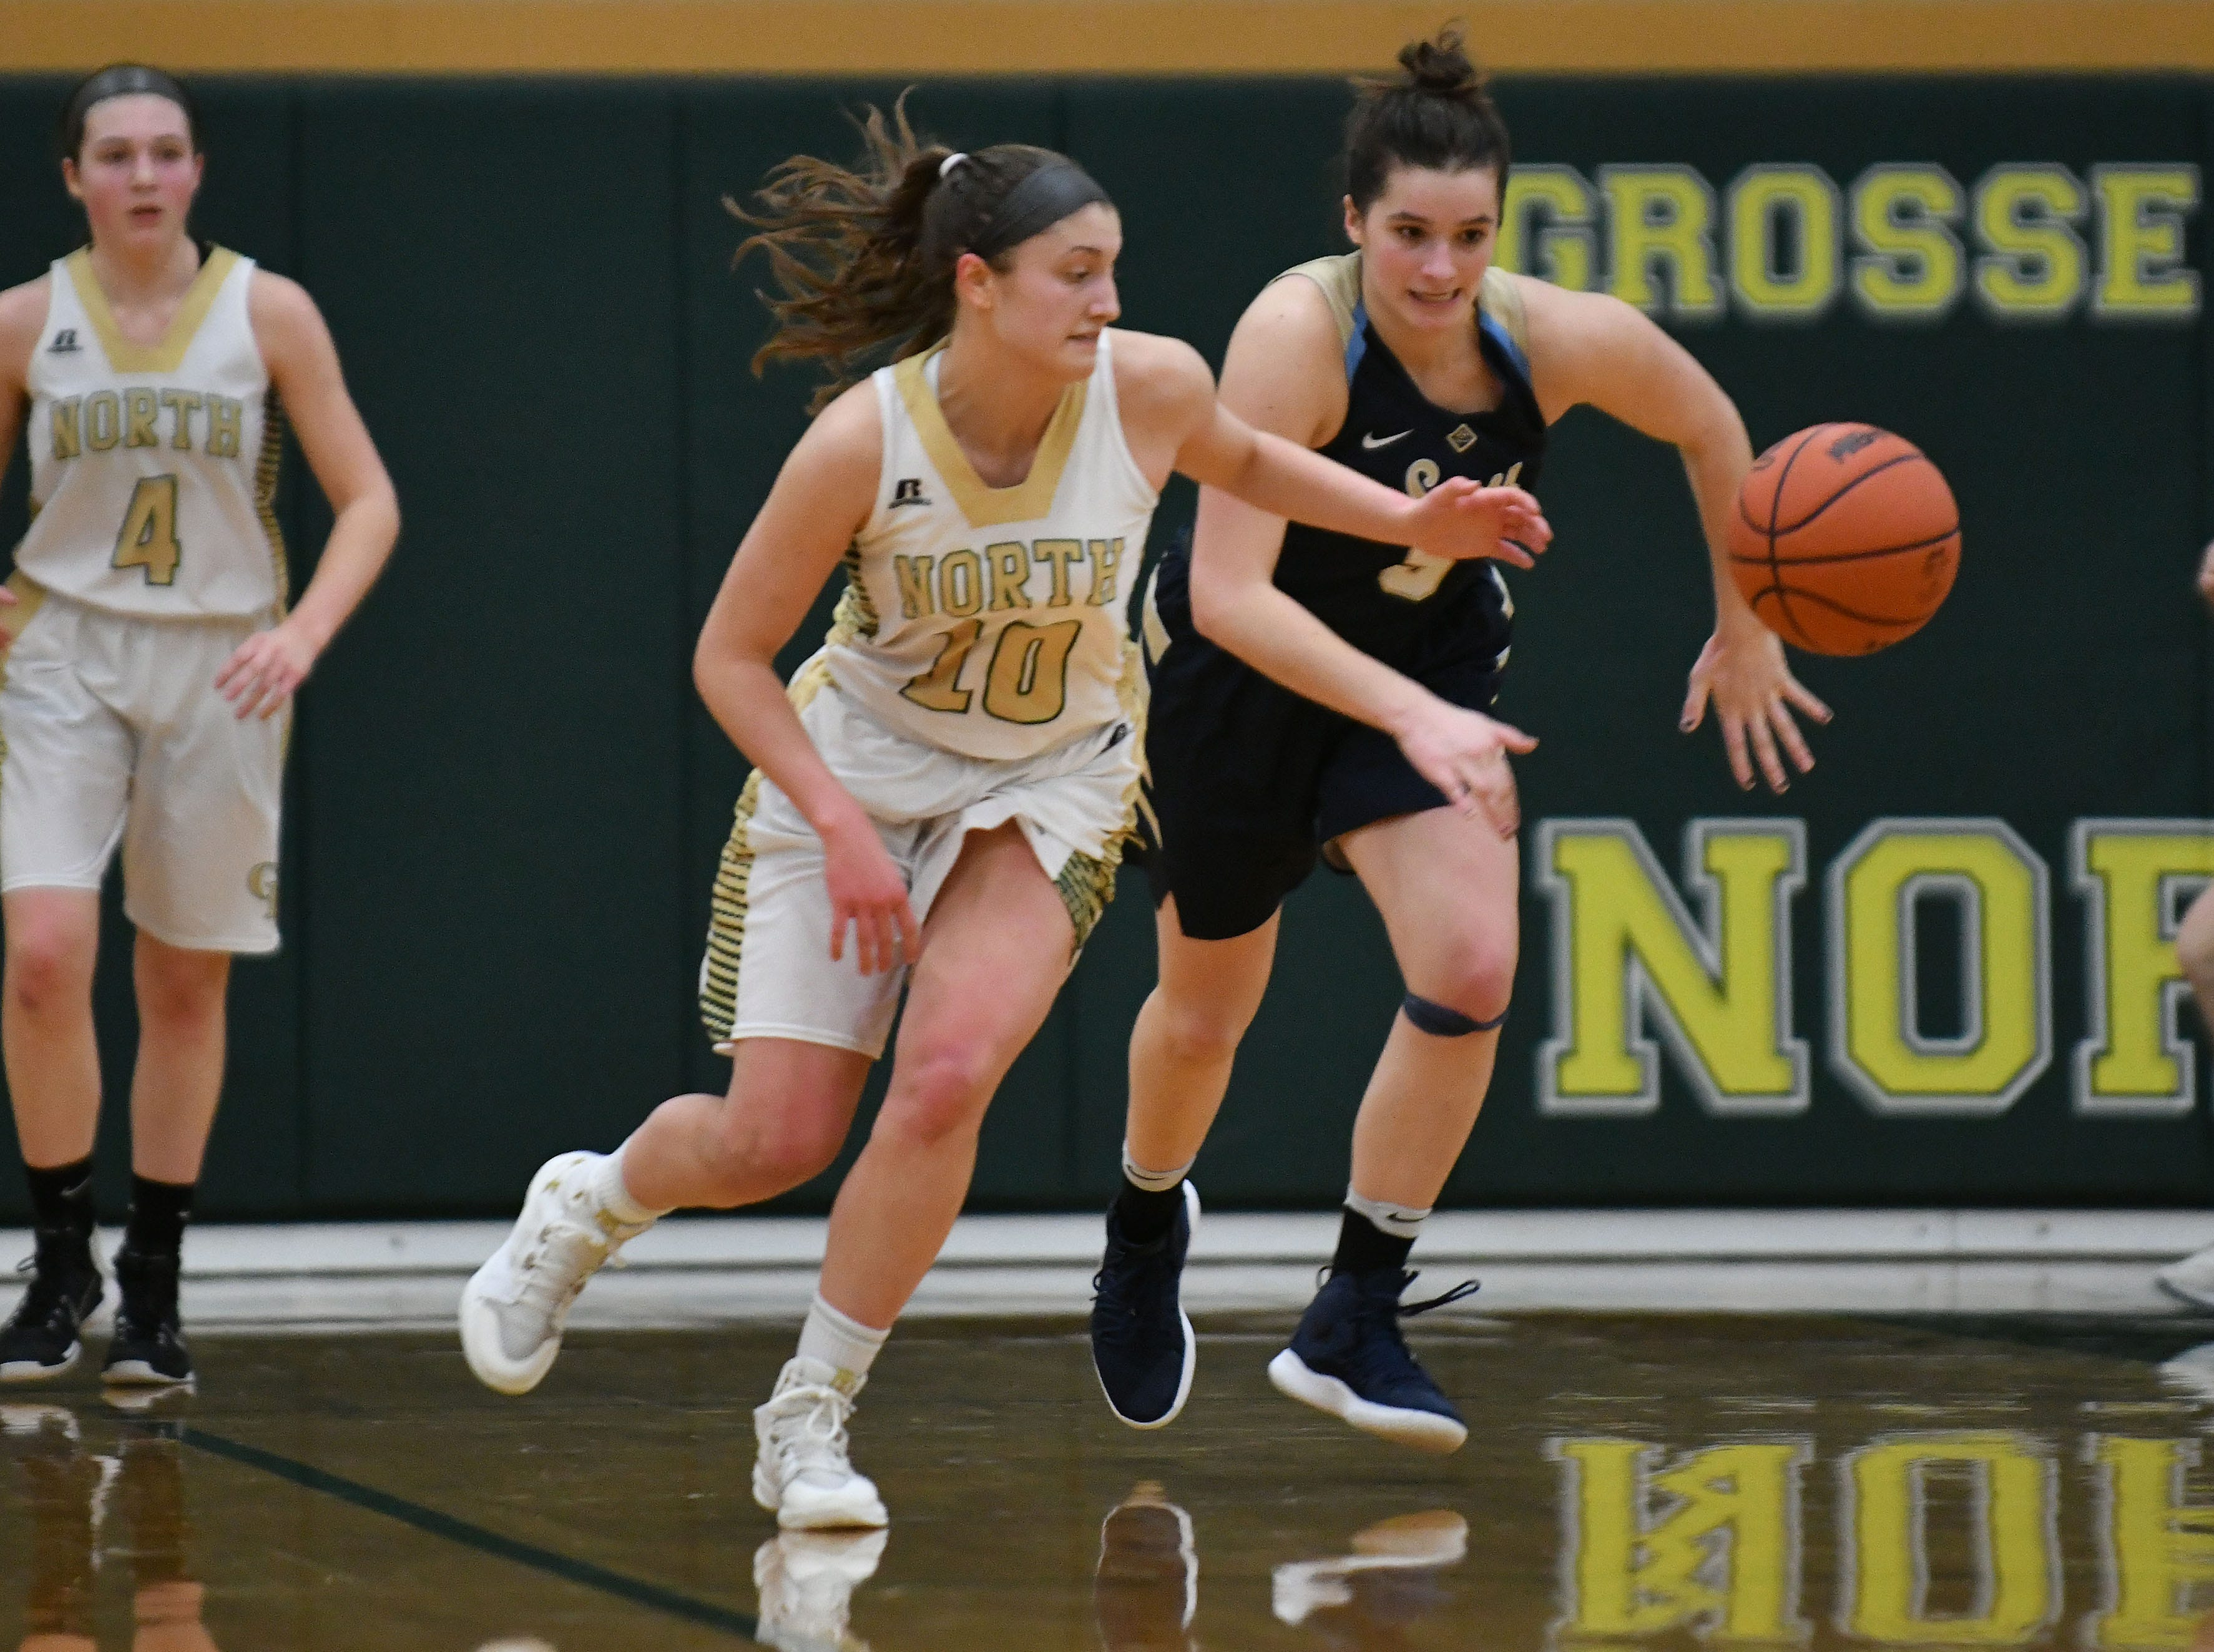 North's Evelyn Zacharias knocks away a pass intended for South's Savannah Srebernak during the second half.